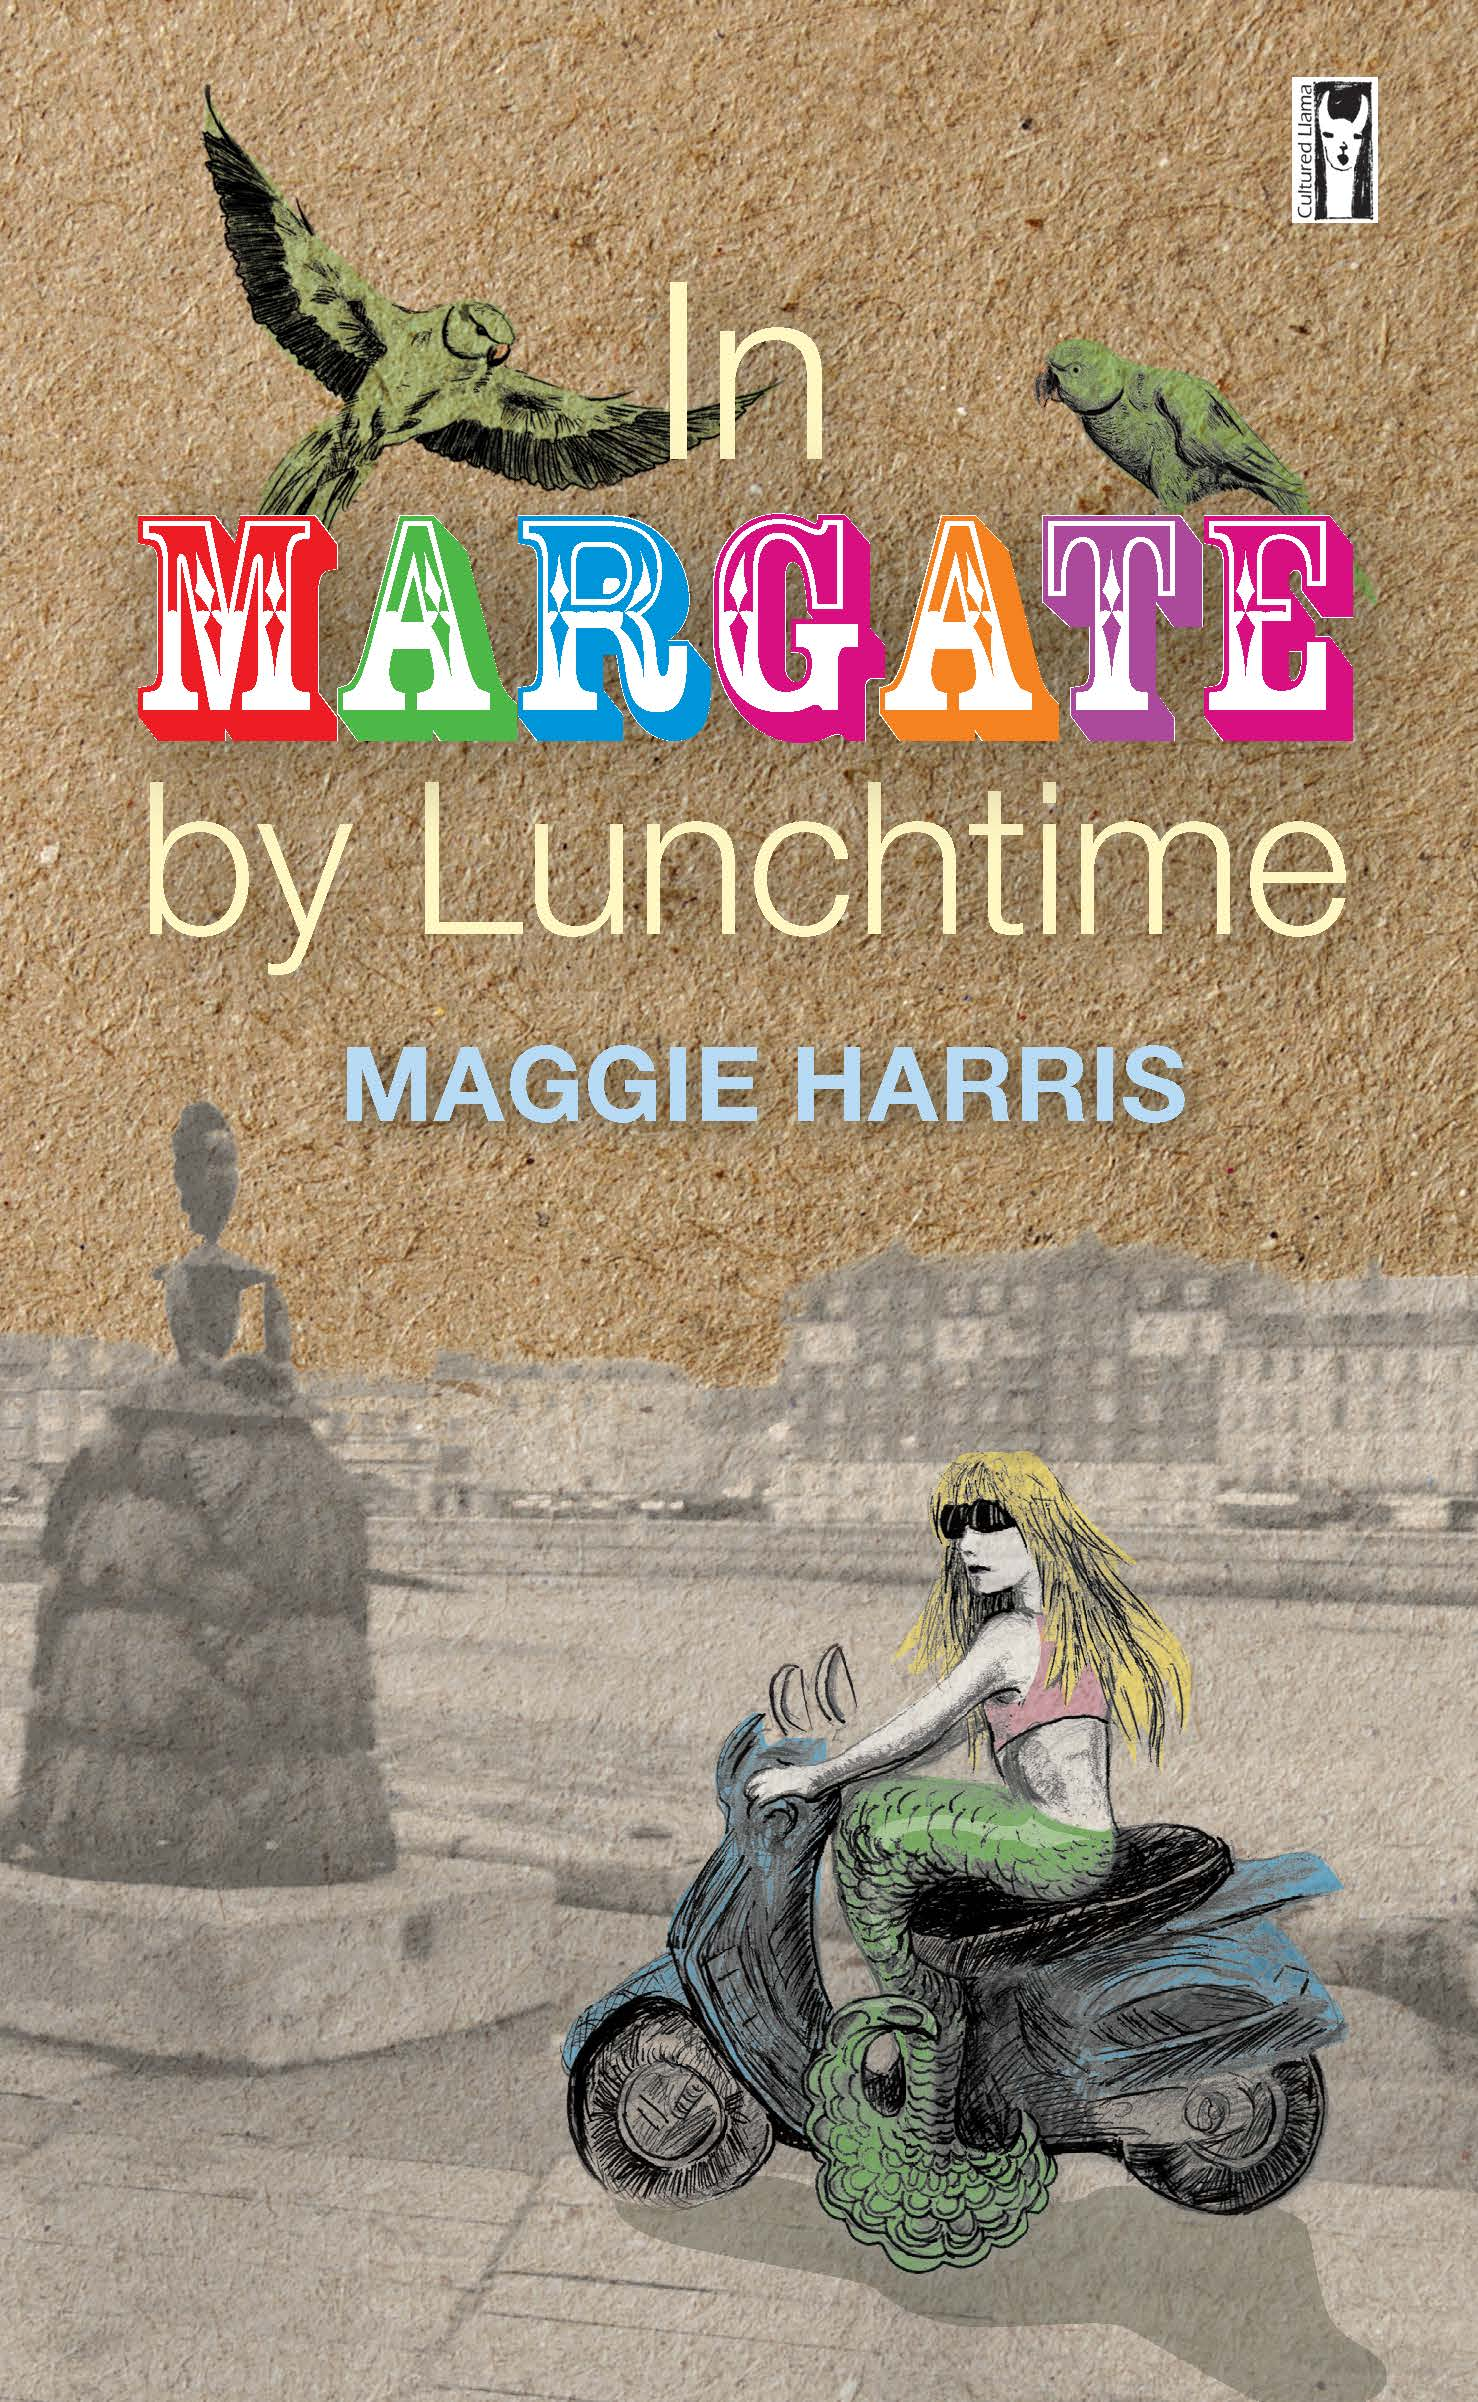 In Margate by Lunchtime by Maggie Harris